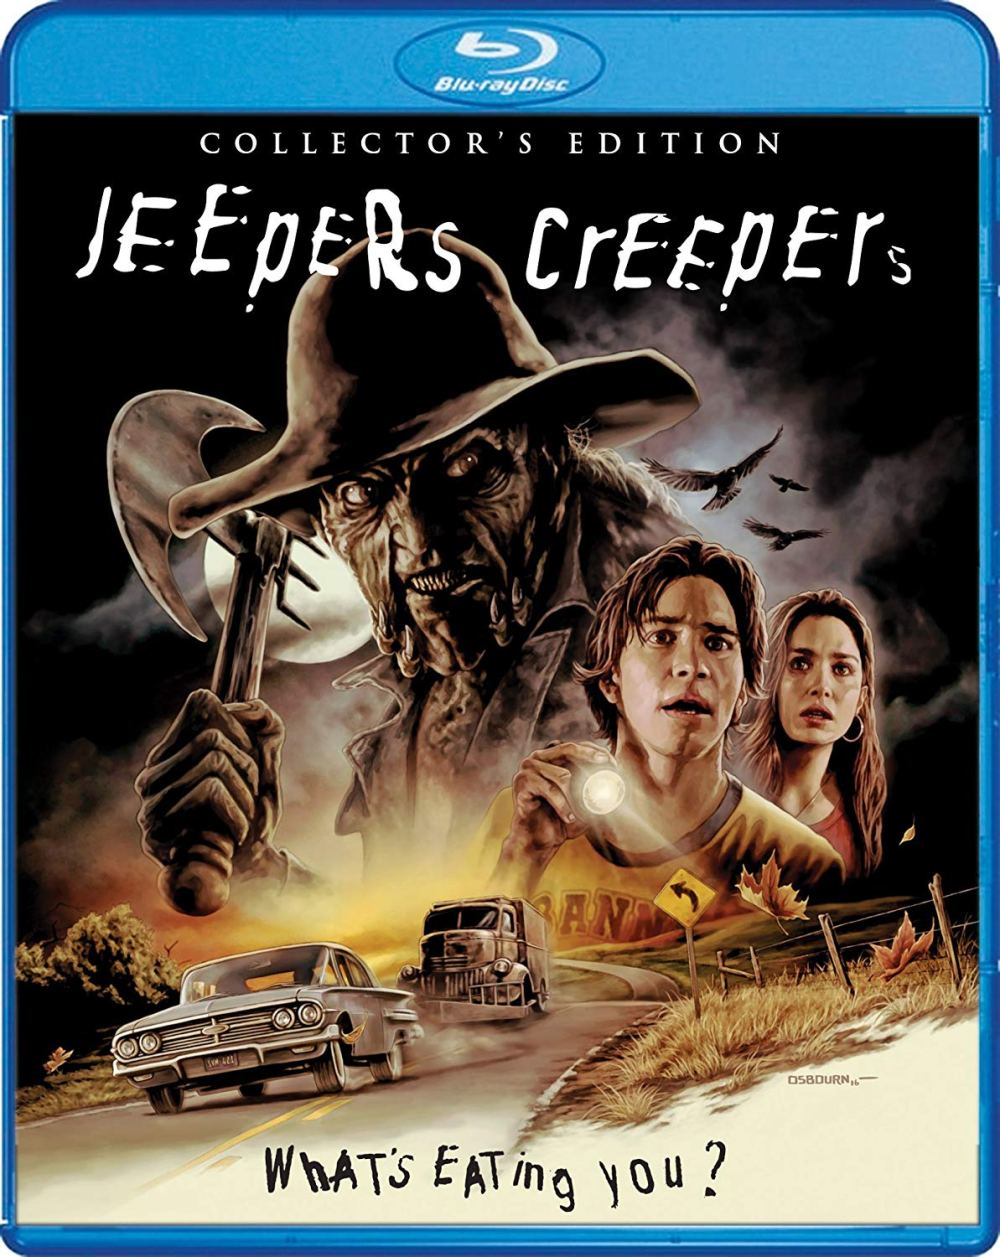 Jeeper_creepers_monster_movie_matteo_berta_amazon_